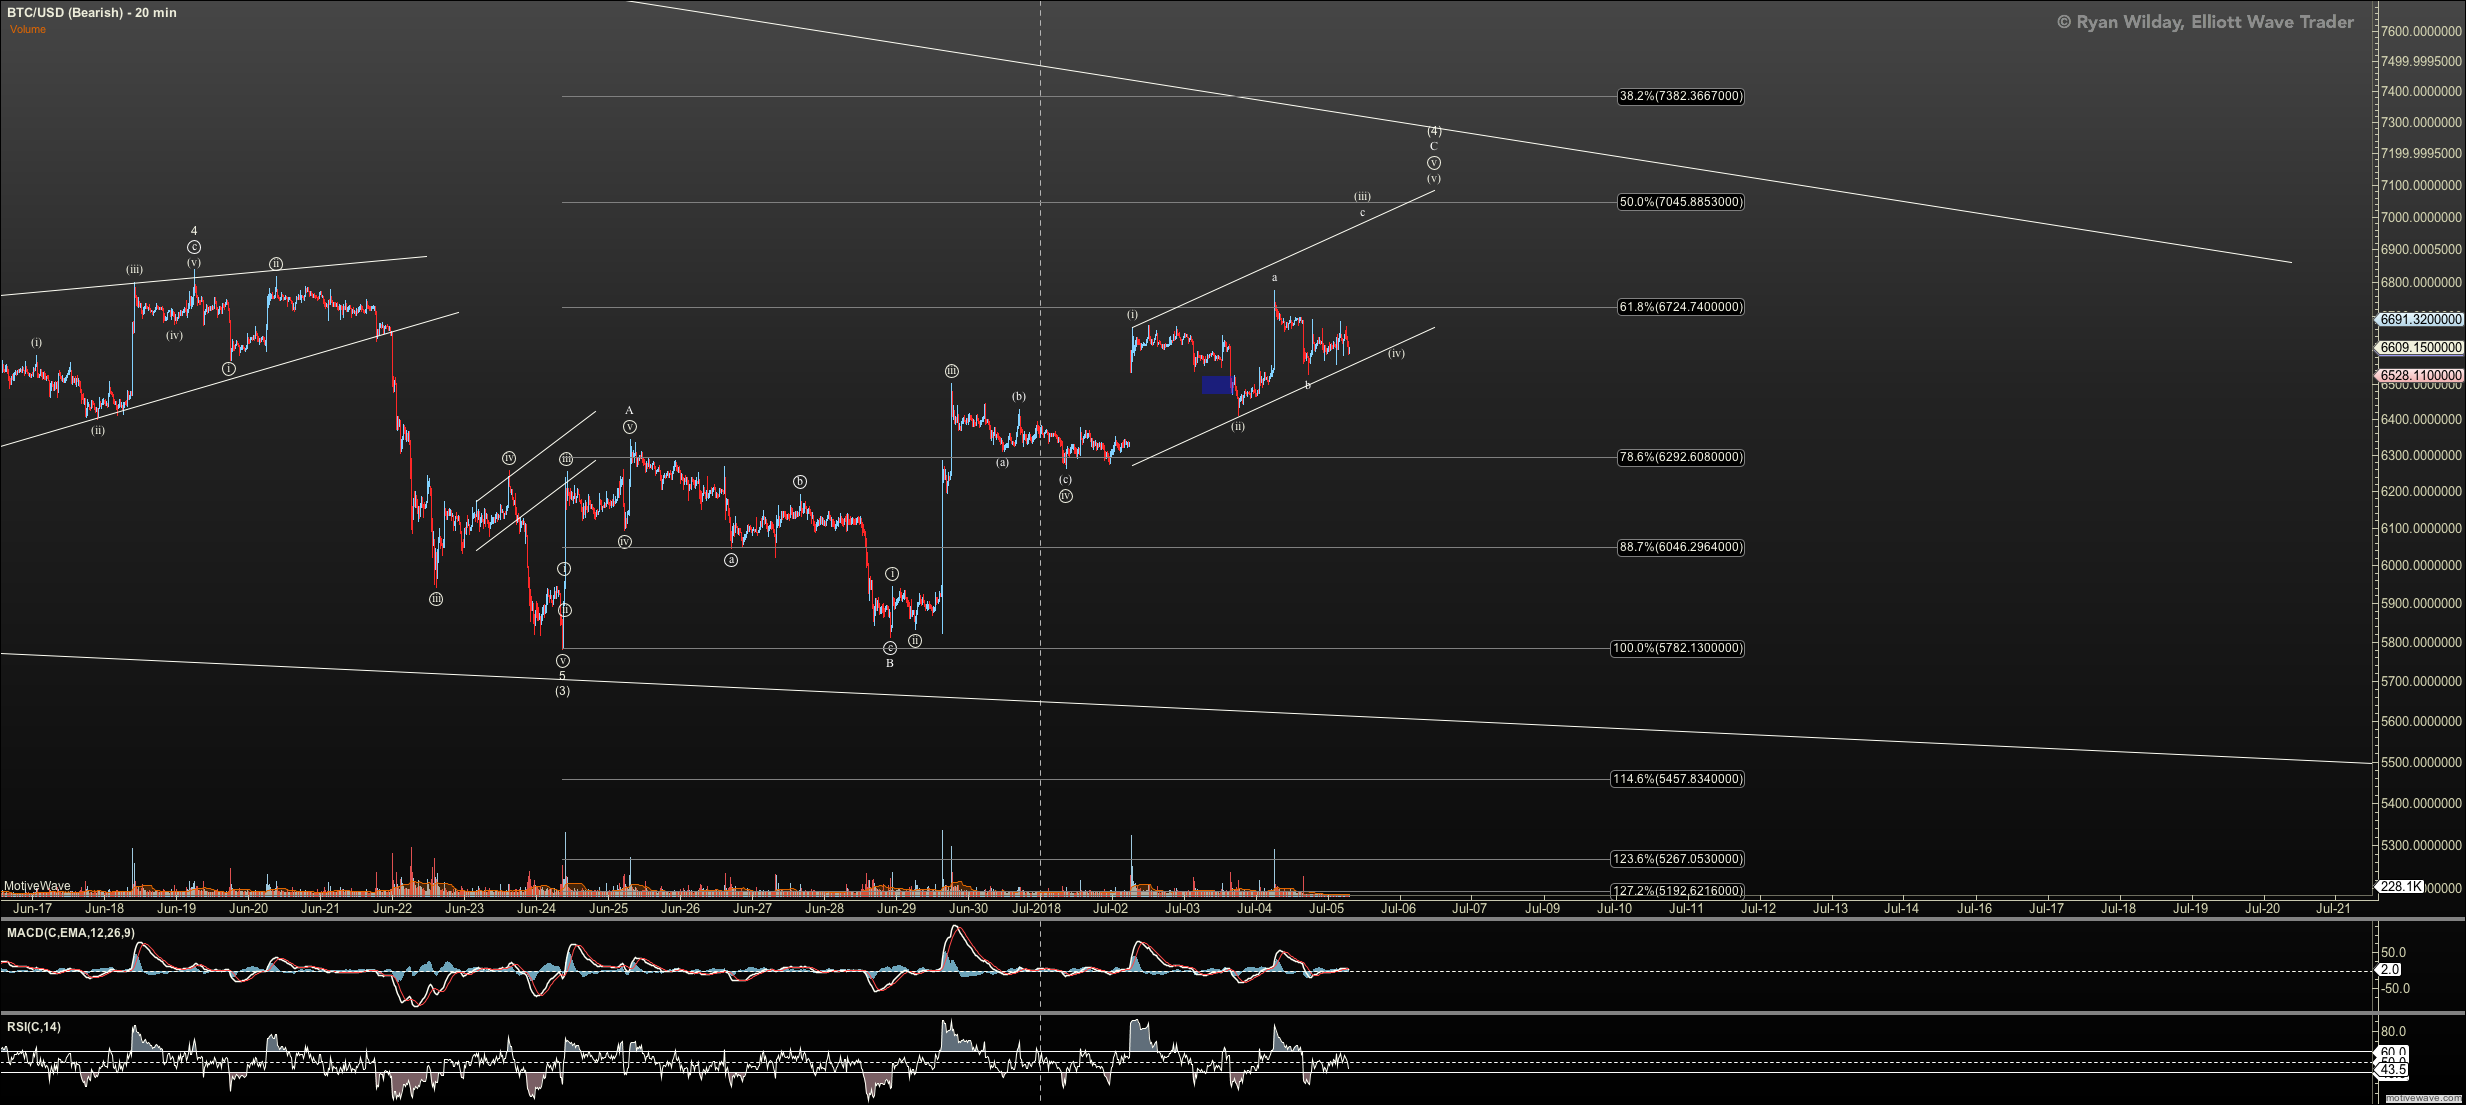 BTCUSD - Bearish - Jul-05 0704 AM (20 min)